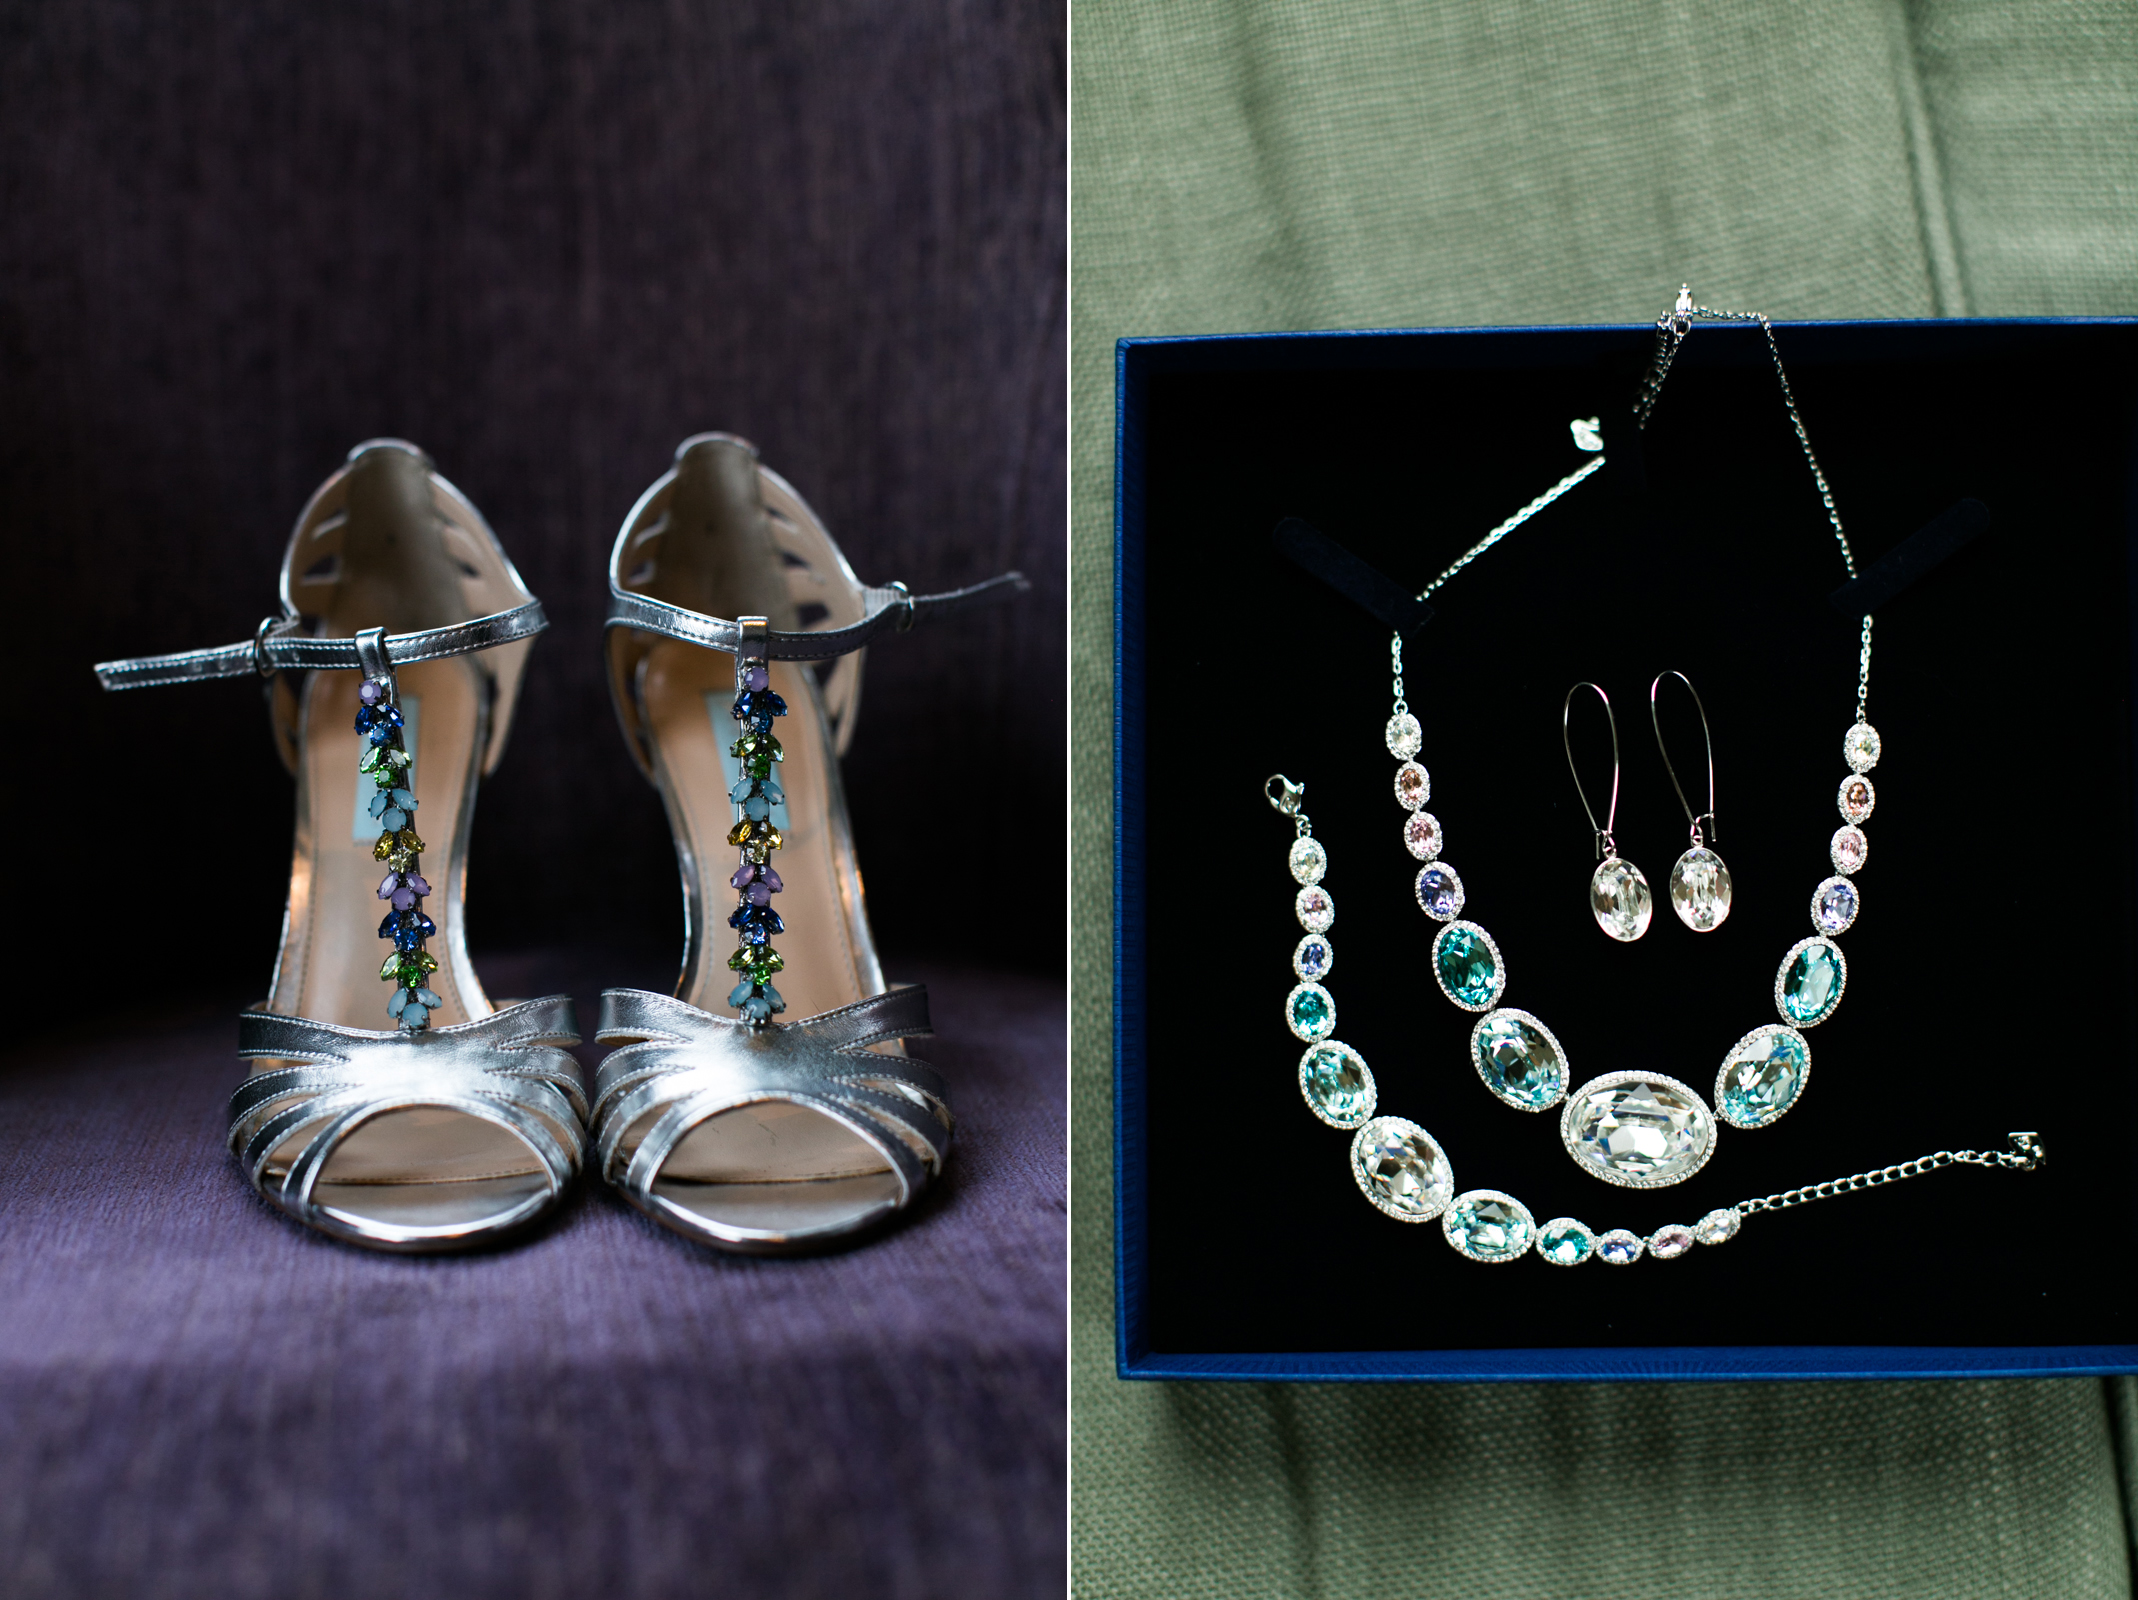 bride shoes & jewelry